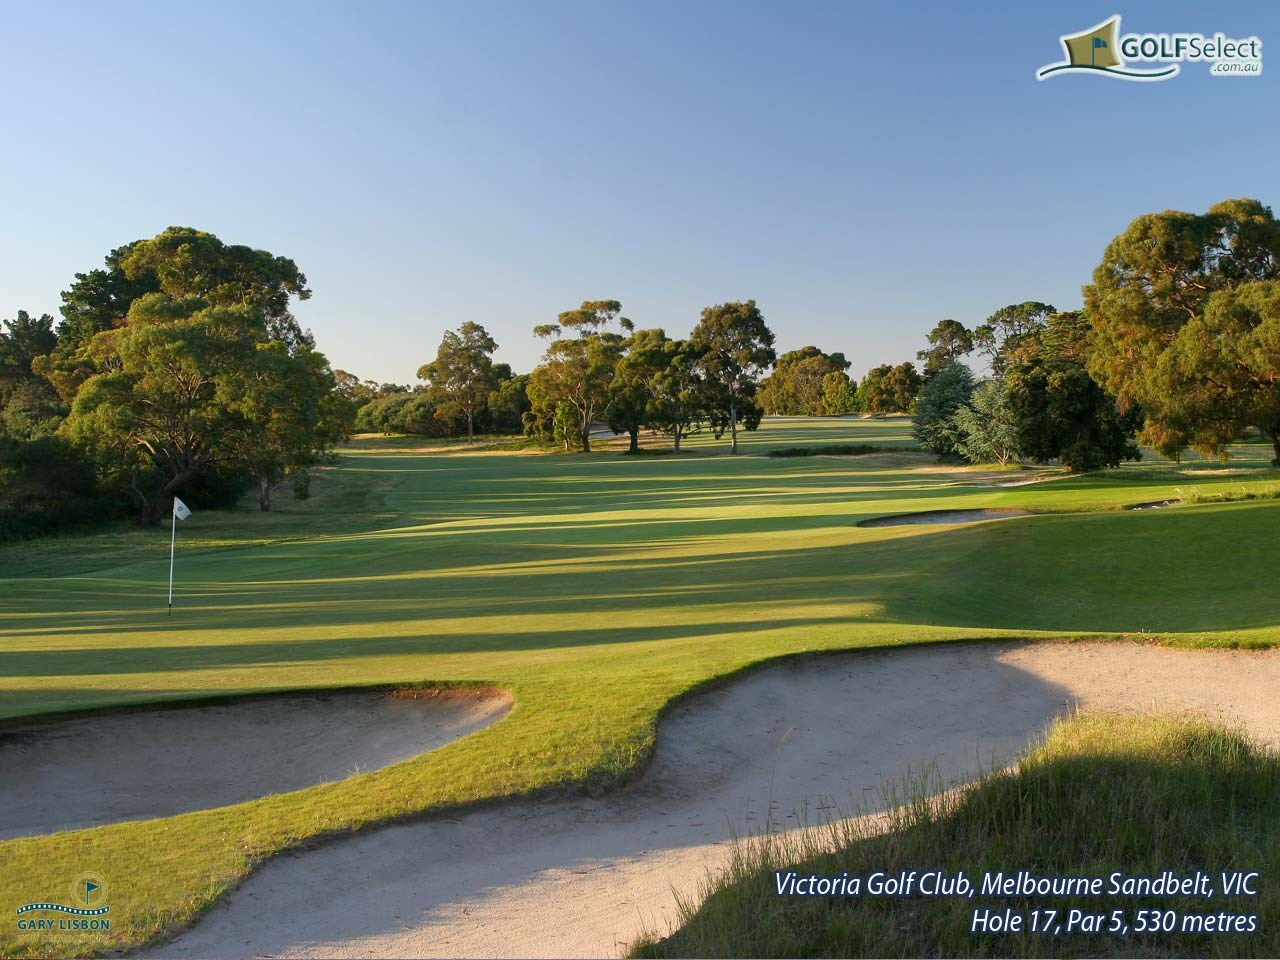 Victoria Golf Club Hole 17, Par 5, 530 metres